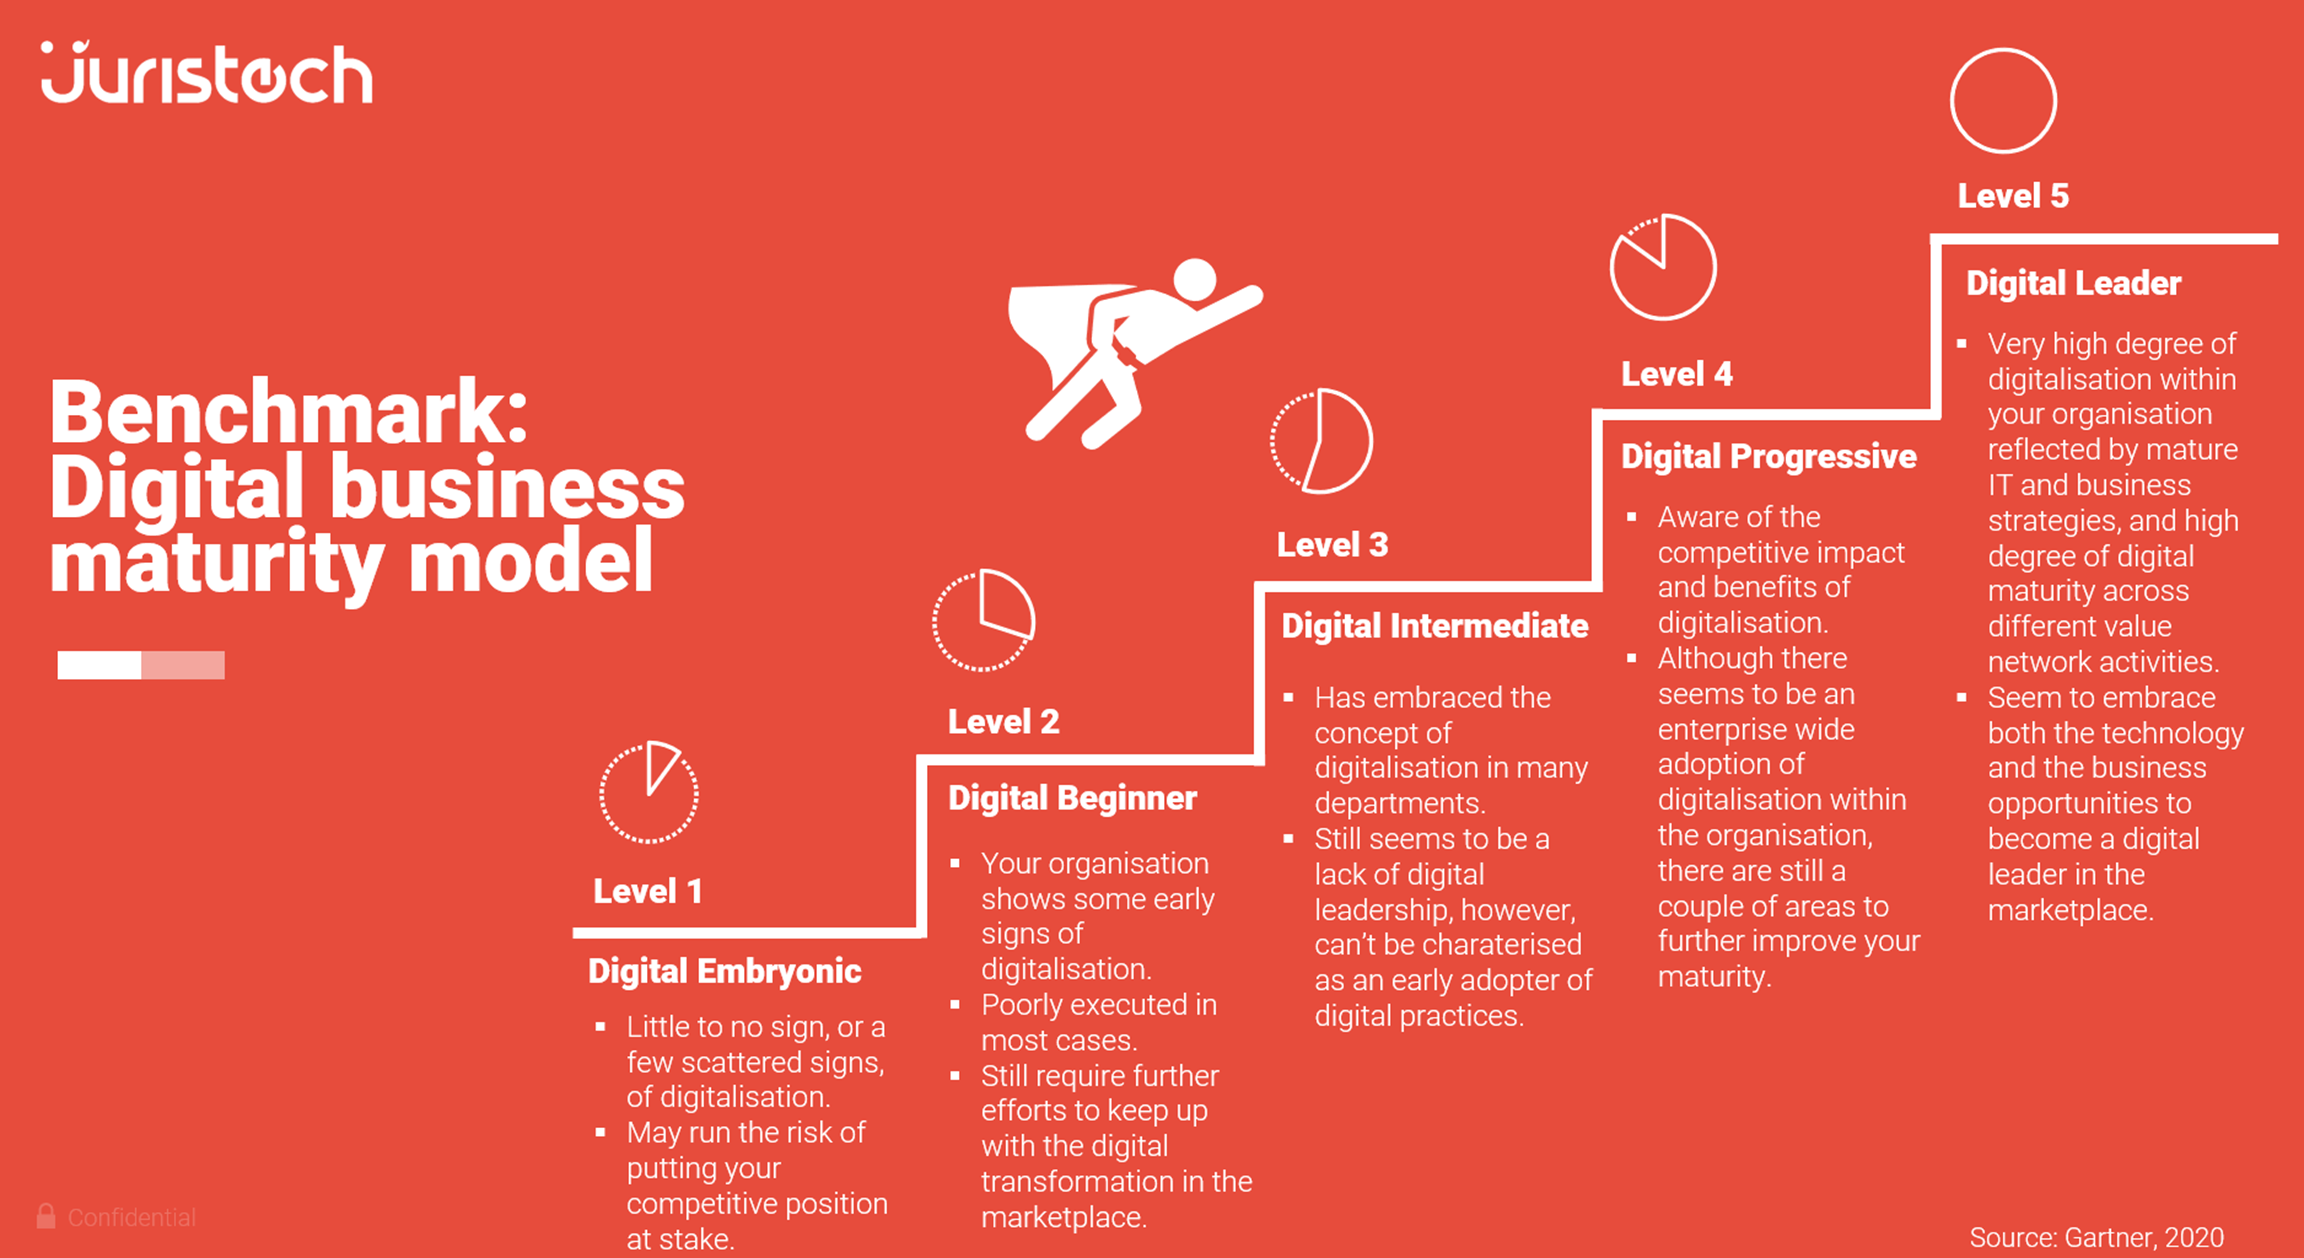 juristech, gartner, Digital business maturity model, digital business, business maturity, see wai hun